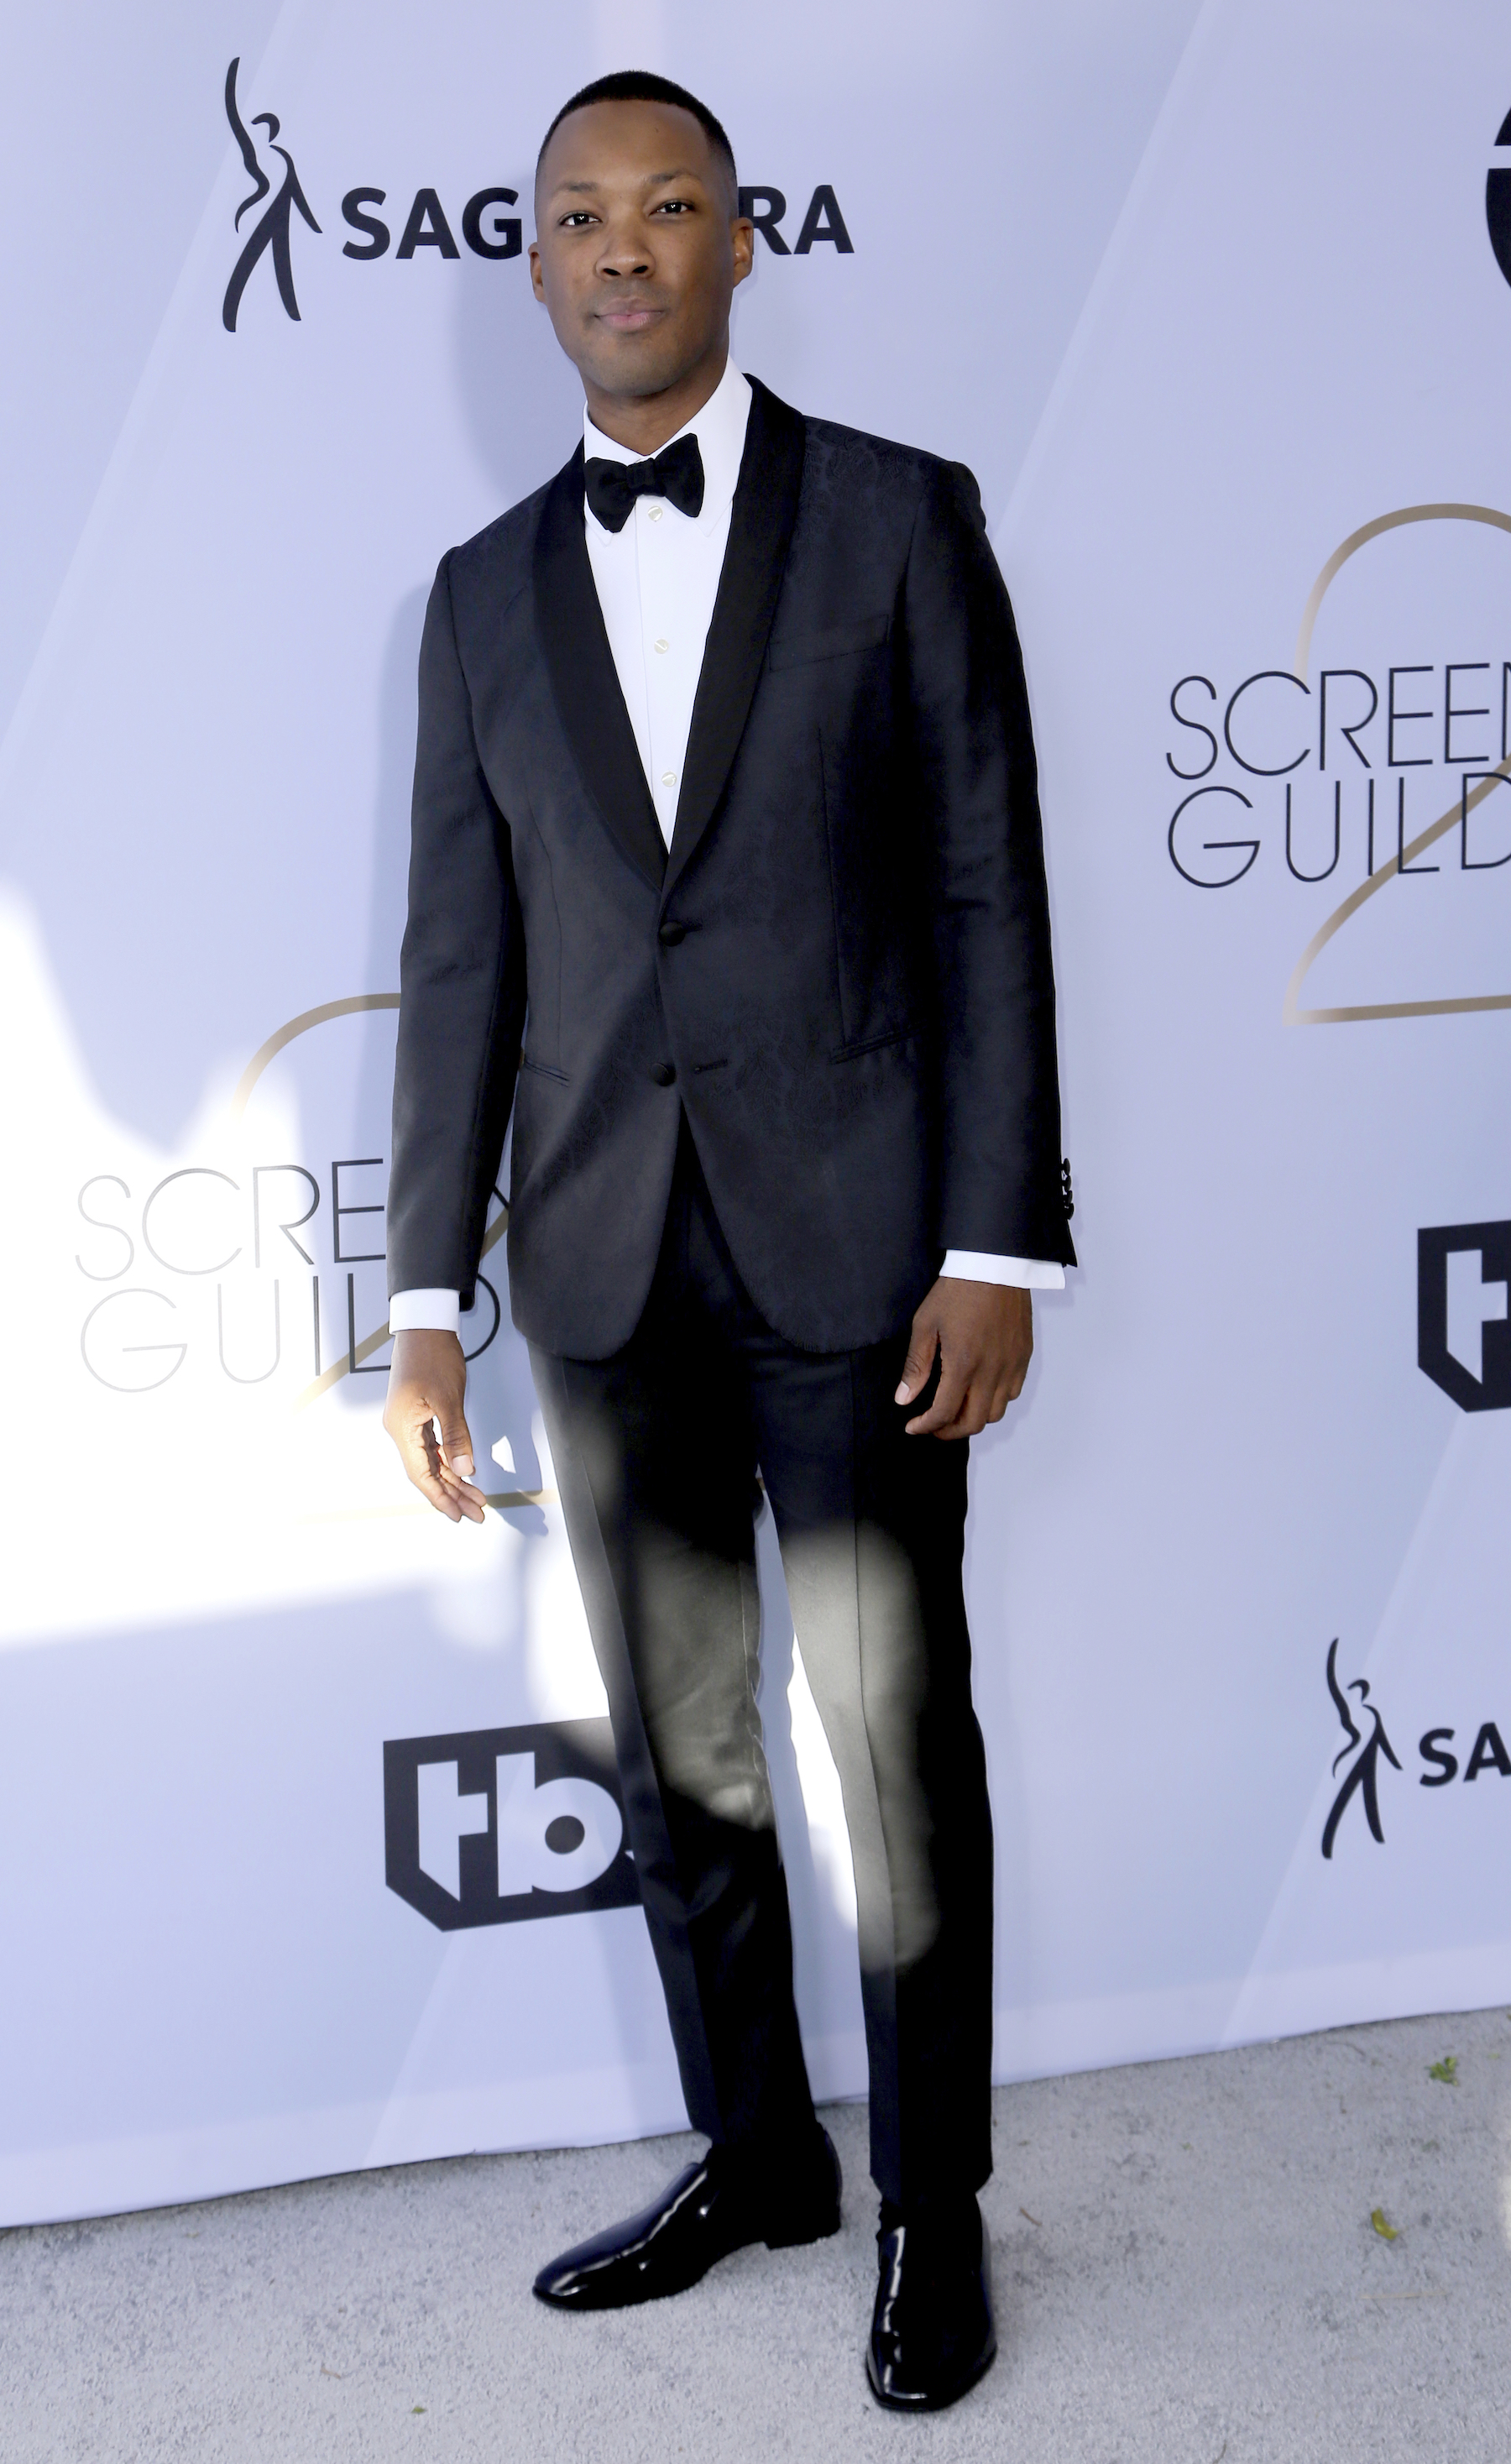 "<div class=""meta image-caption""><div class=""origin-logo origin-image ap""><span>AP</span></div><span class=""caption-text"">Corey Hawkins arrives at the 25th annual Screen Actors Guild Awards at the Shrine Auditorium & Expo Hall on Sunday, Jan. 27, 2019, in Los Angeles. (Willy Sanjuan/Invision/AP)</span></div>"